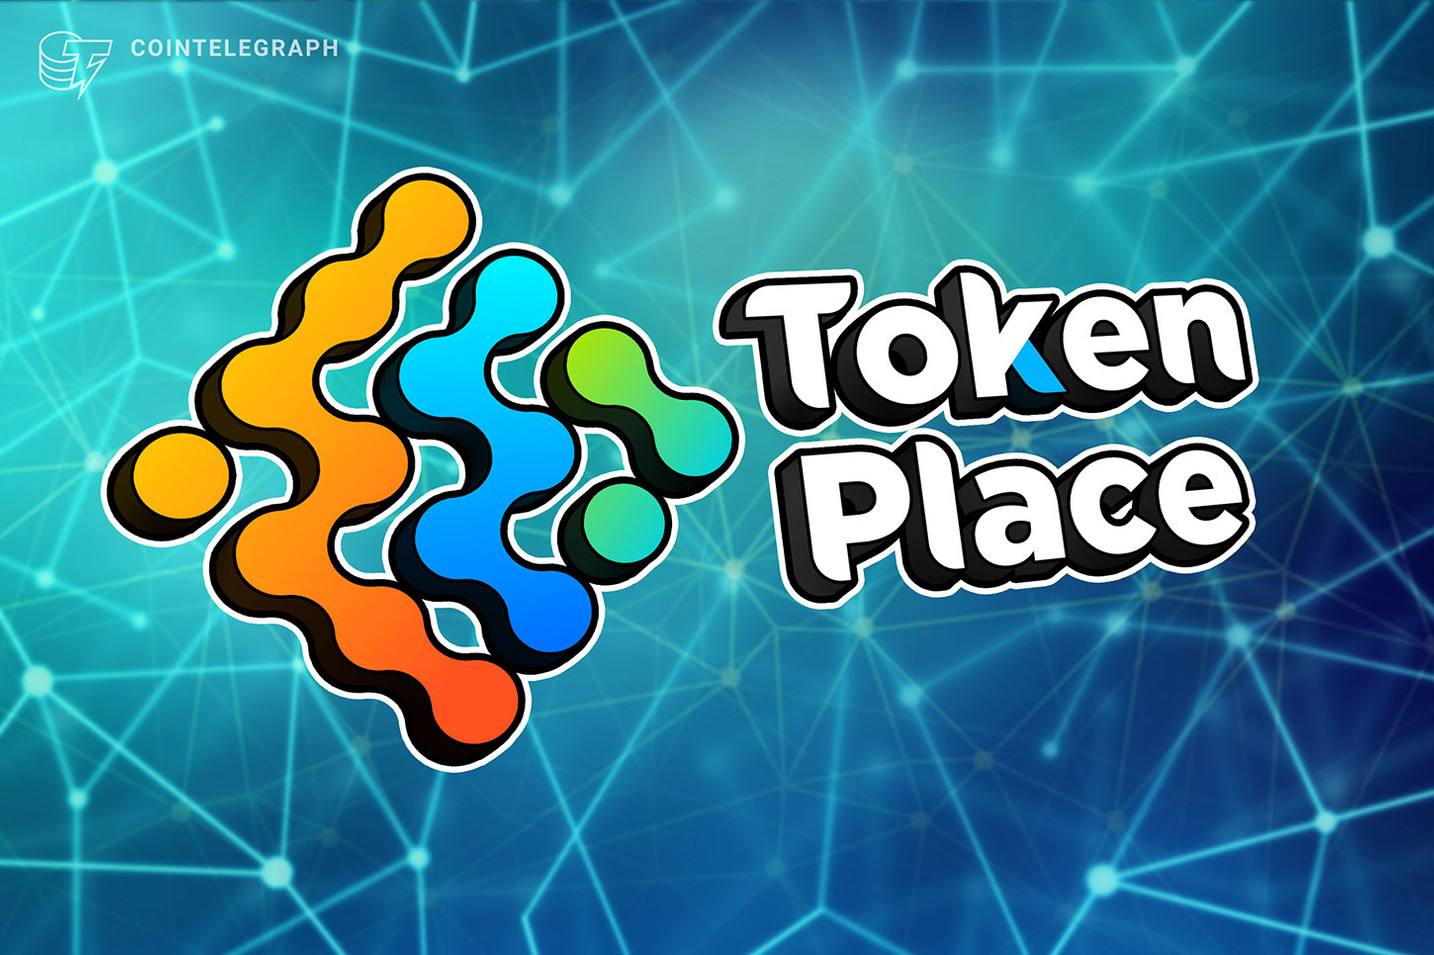 Tokenplace takes crypto trading mainstream, launches TOK coin today